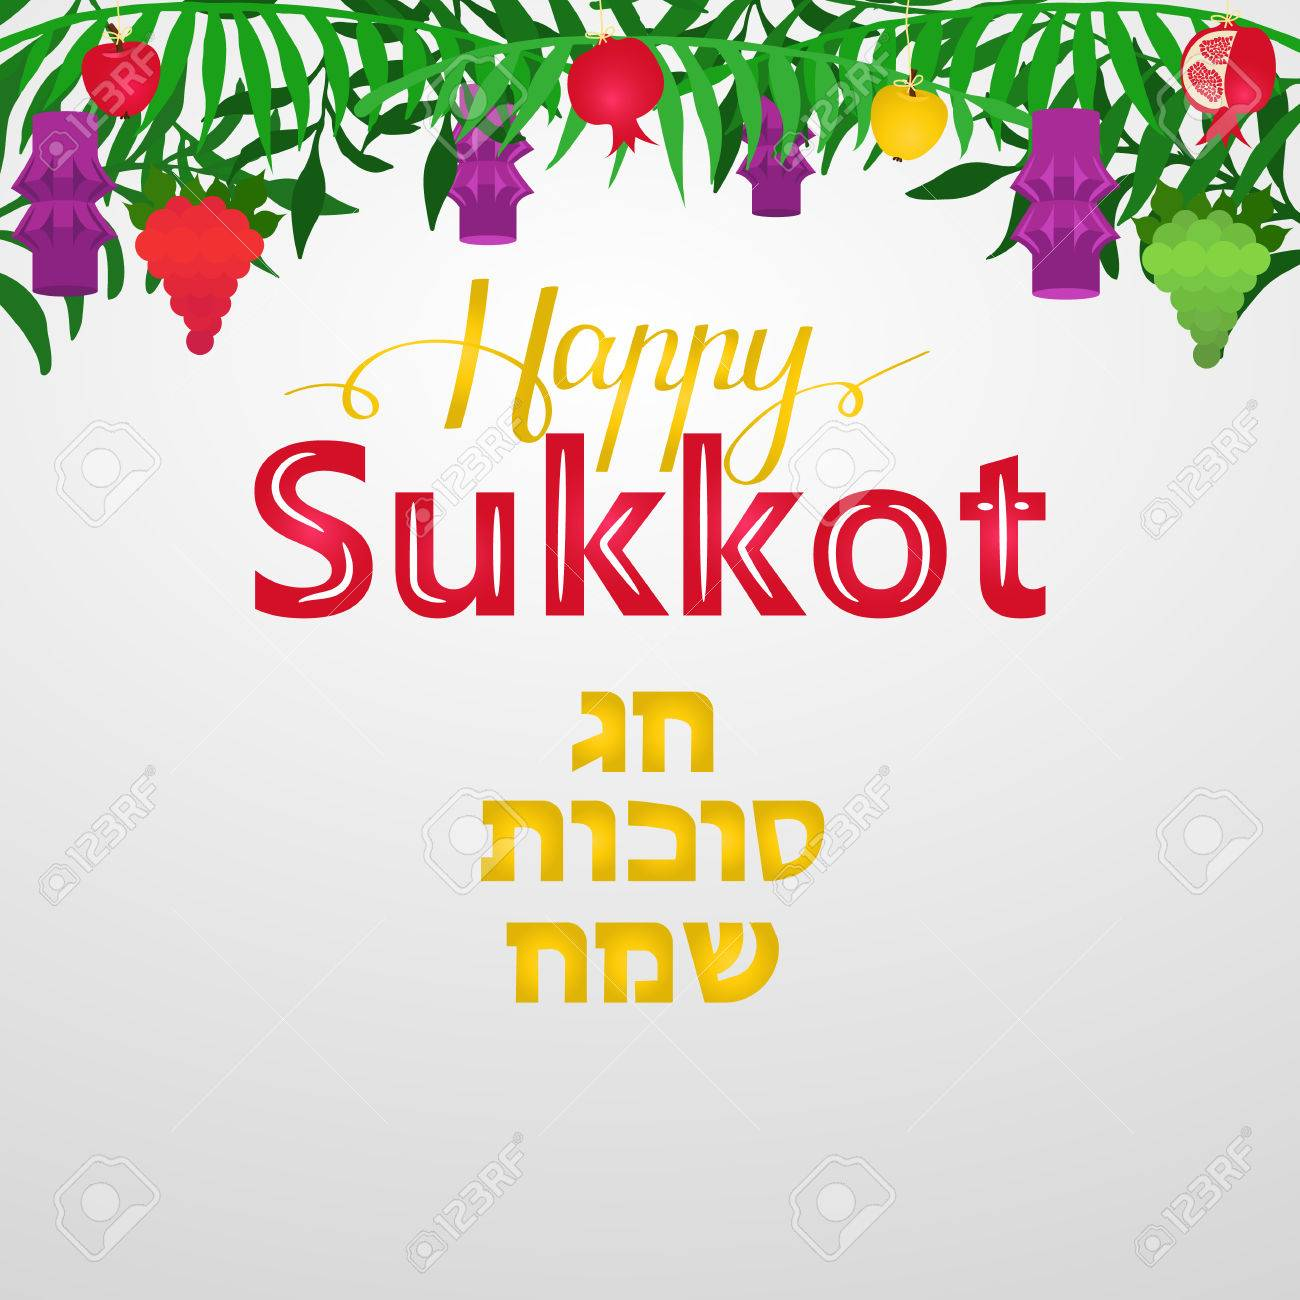 Succot Greeting Card Happy Sukkot Jewish Holiday Happy Sukkot